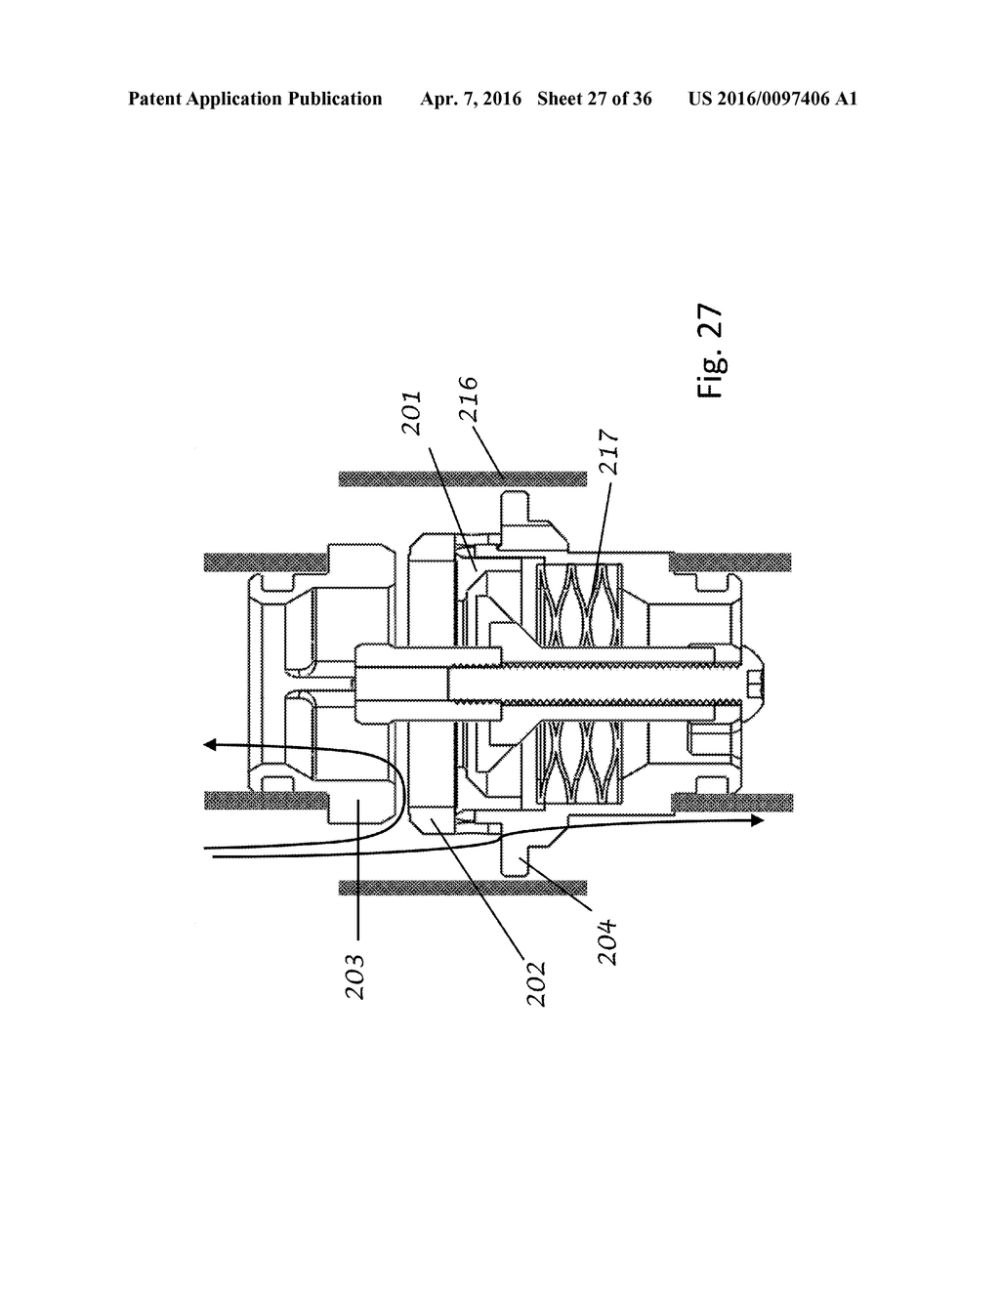 medium resolution of hydraulic damper hydraulic bump stop and diverter valve diagram schematic and image 28